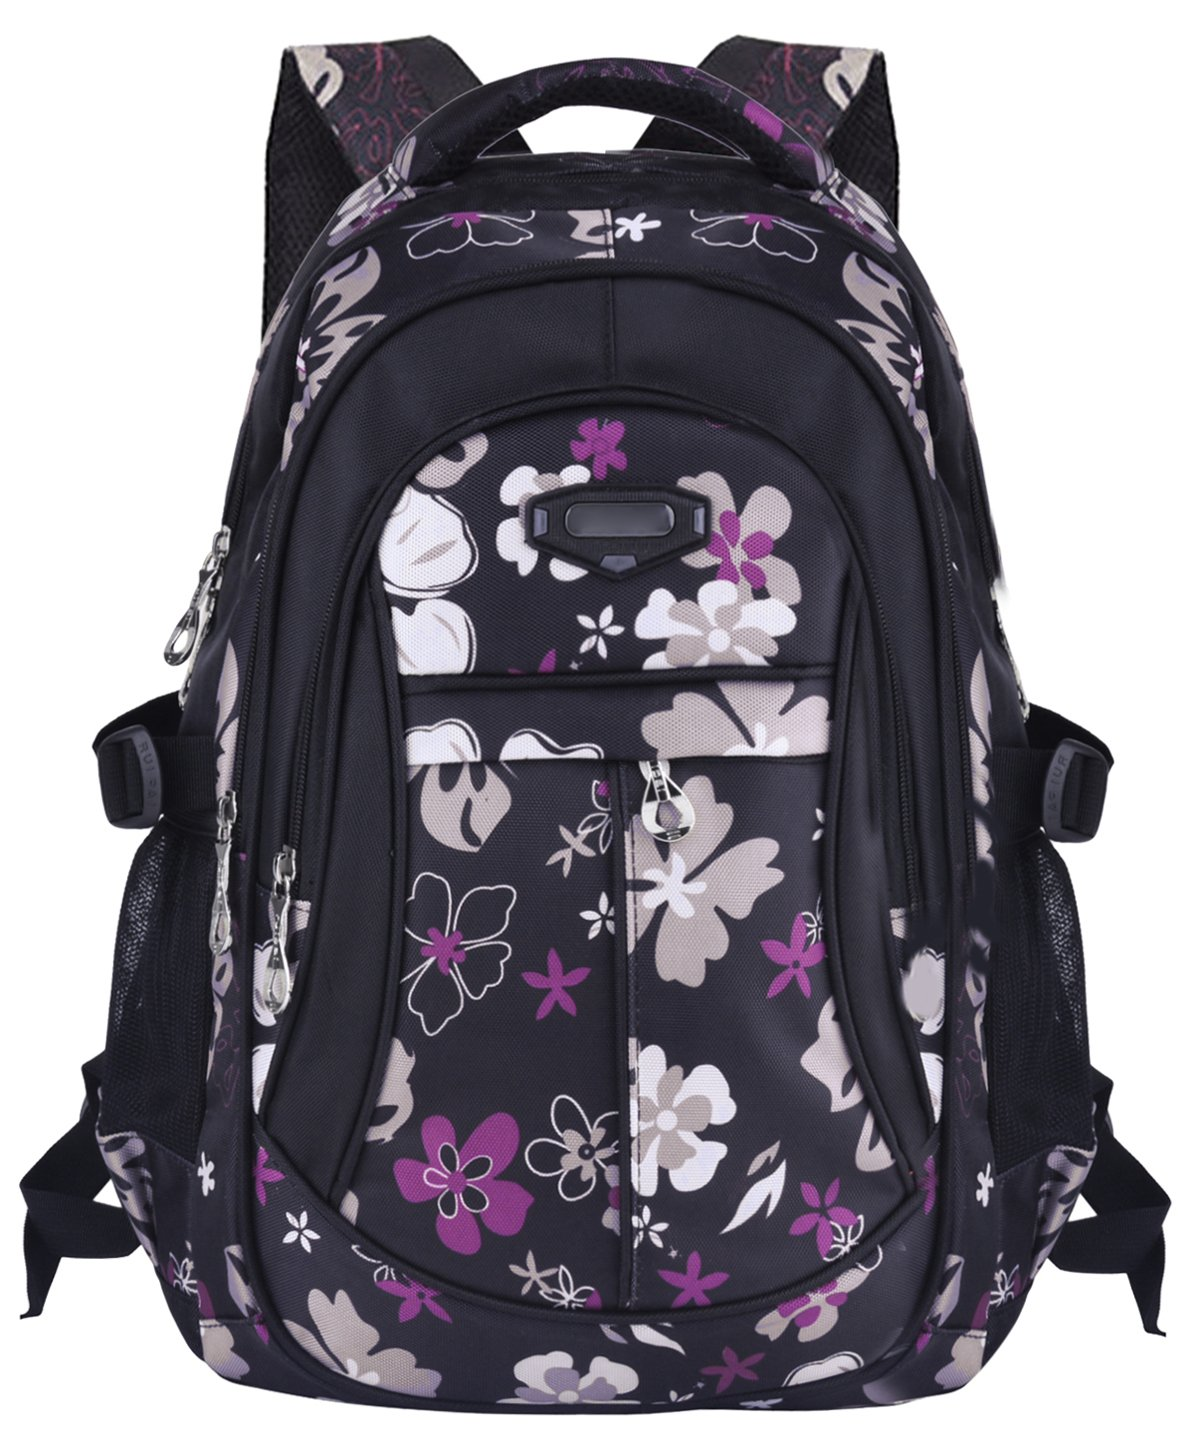 9f19a1f80ddfc Coofit-Cartable fille Sac a dos fille Sac dos ecole fille Cartable fille  primaire Sac